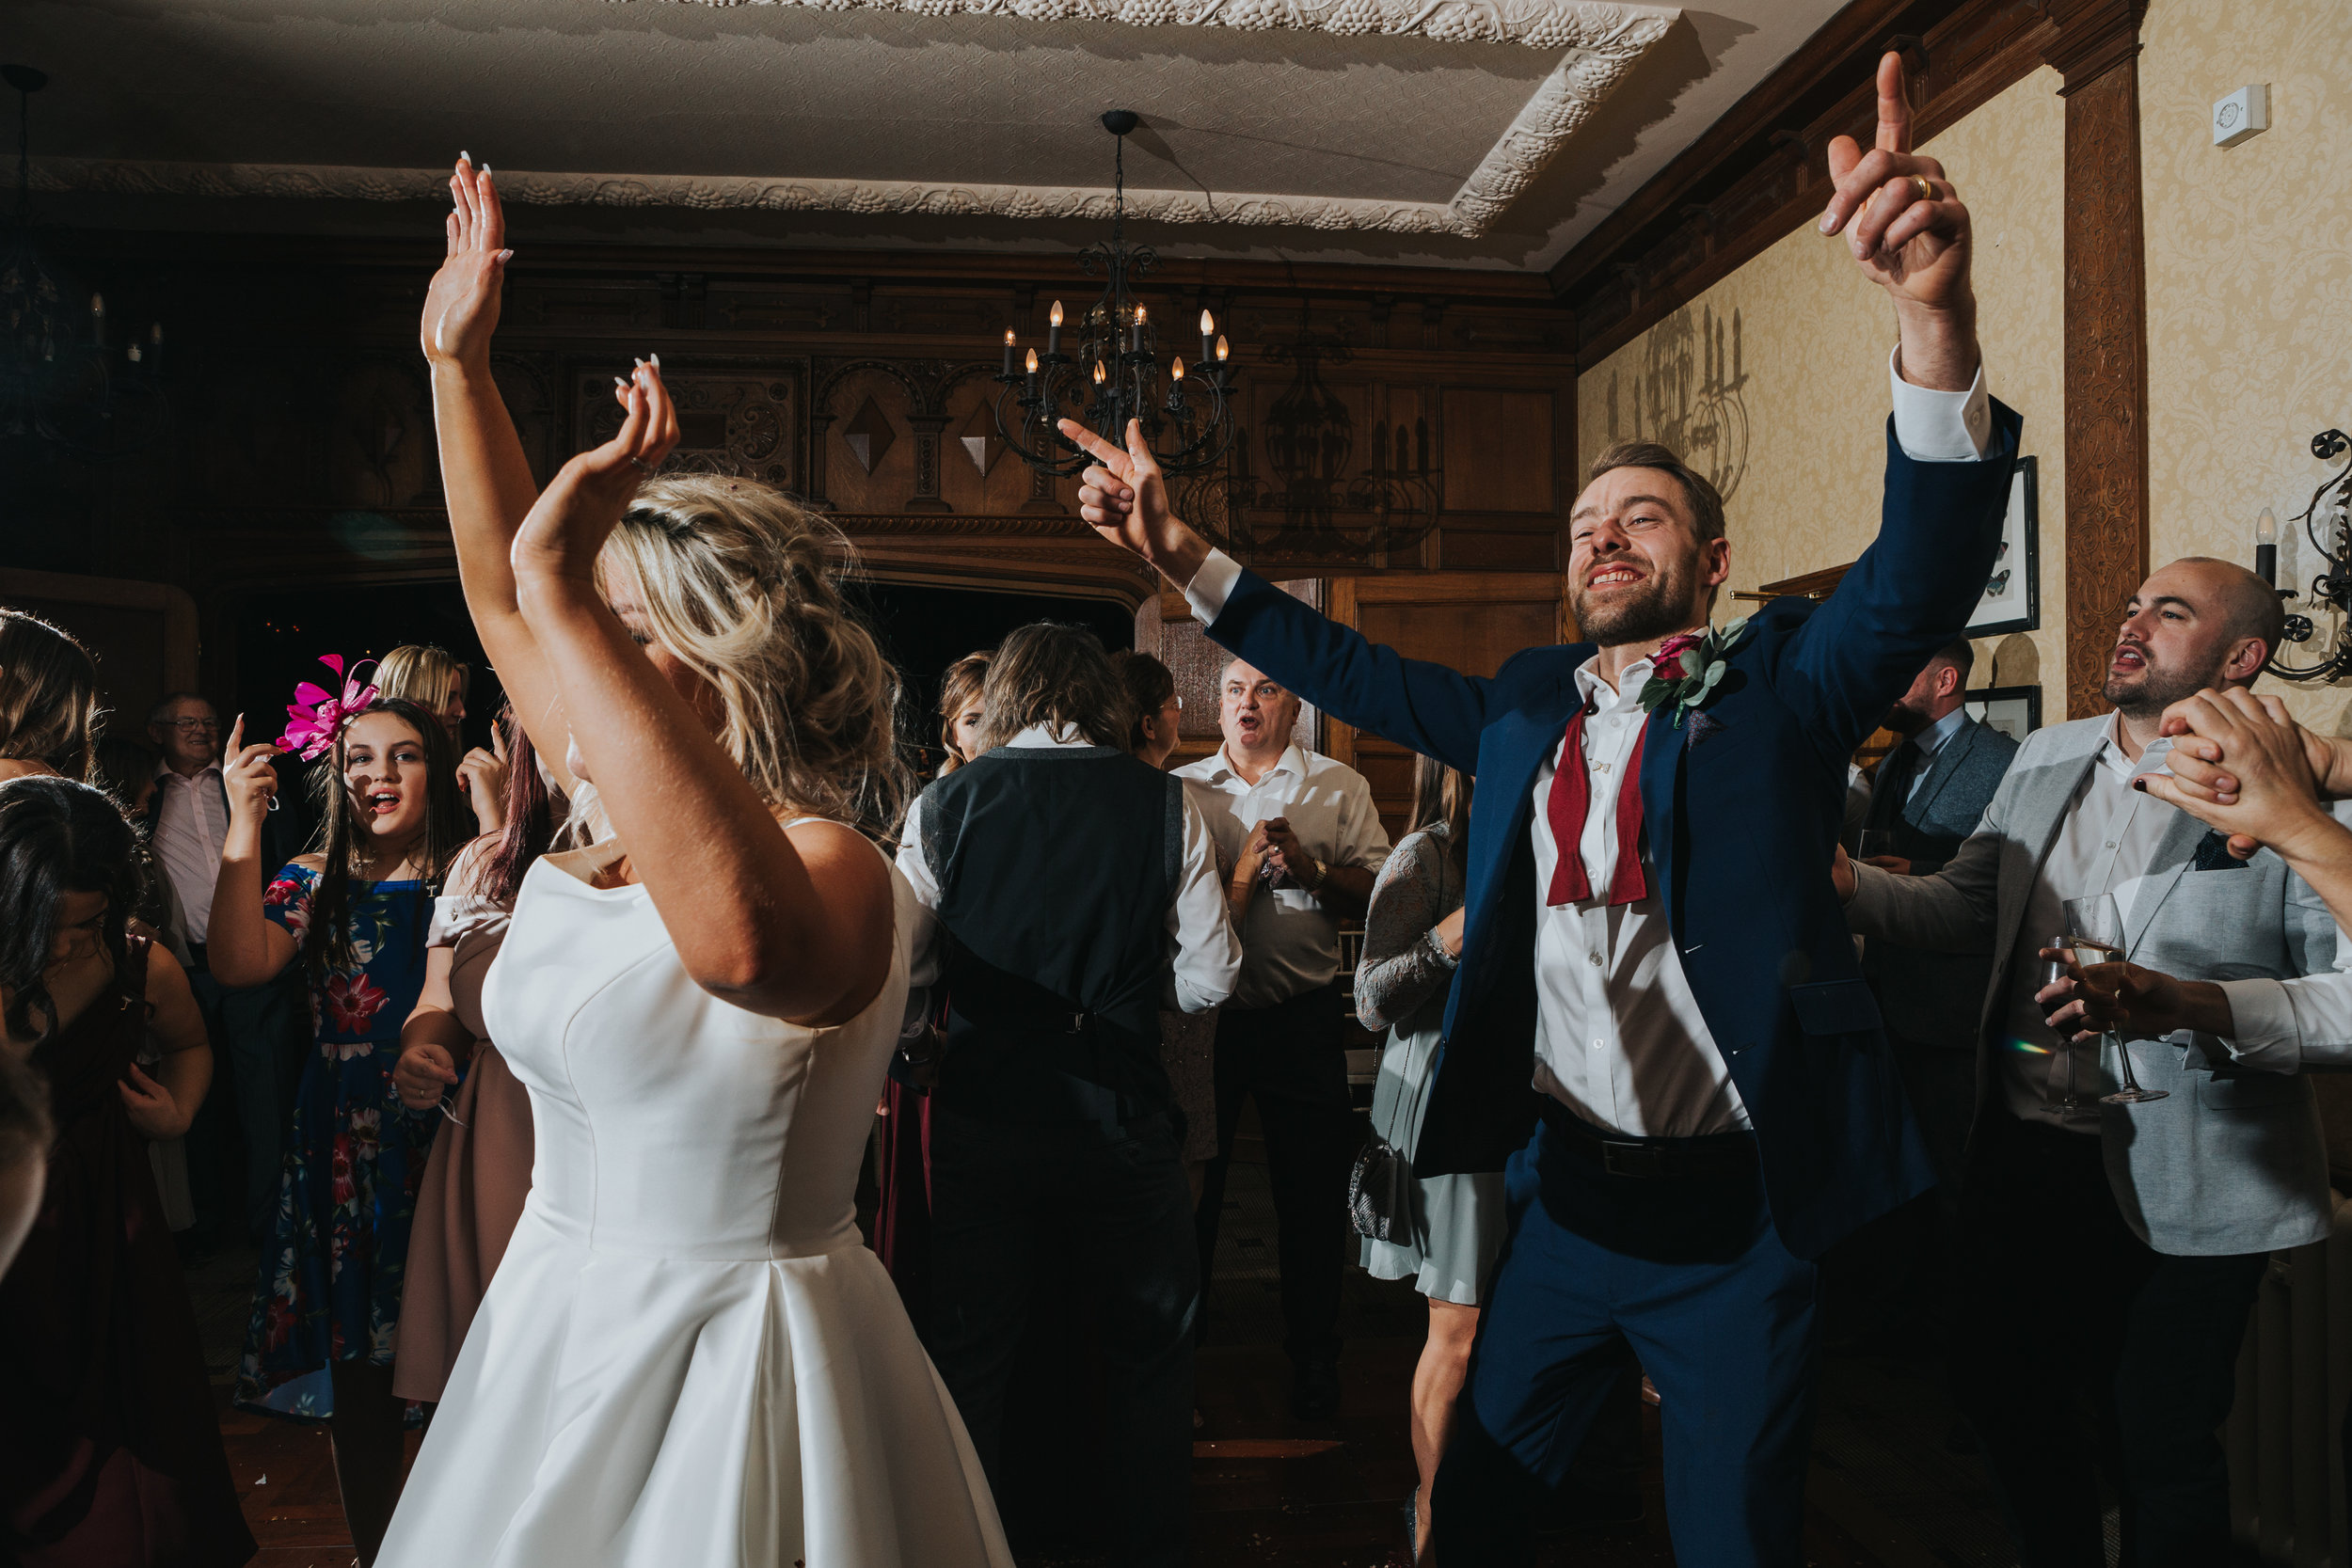 Groom stands nest to his new wife holding both hands in the air while grinning from ear to ear, surrounded by his friends and family.